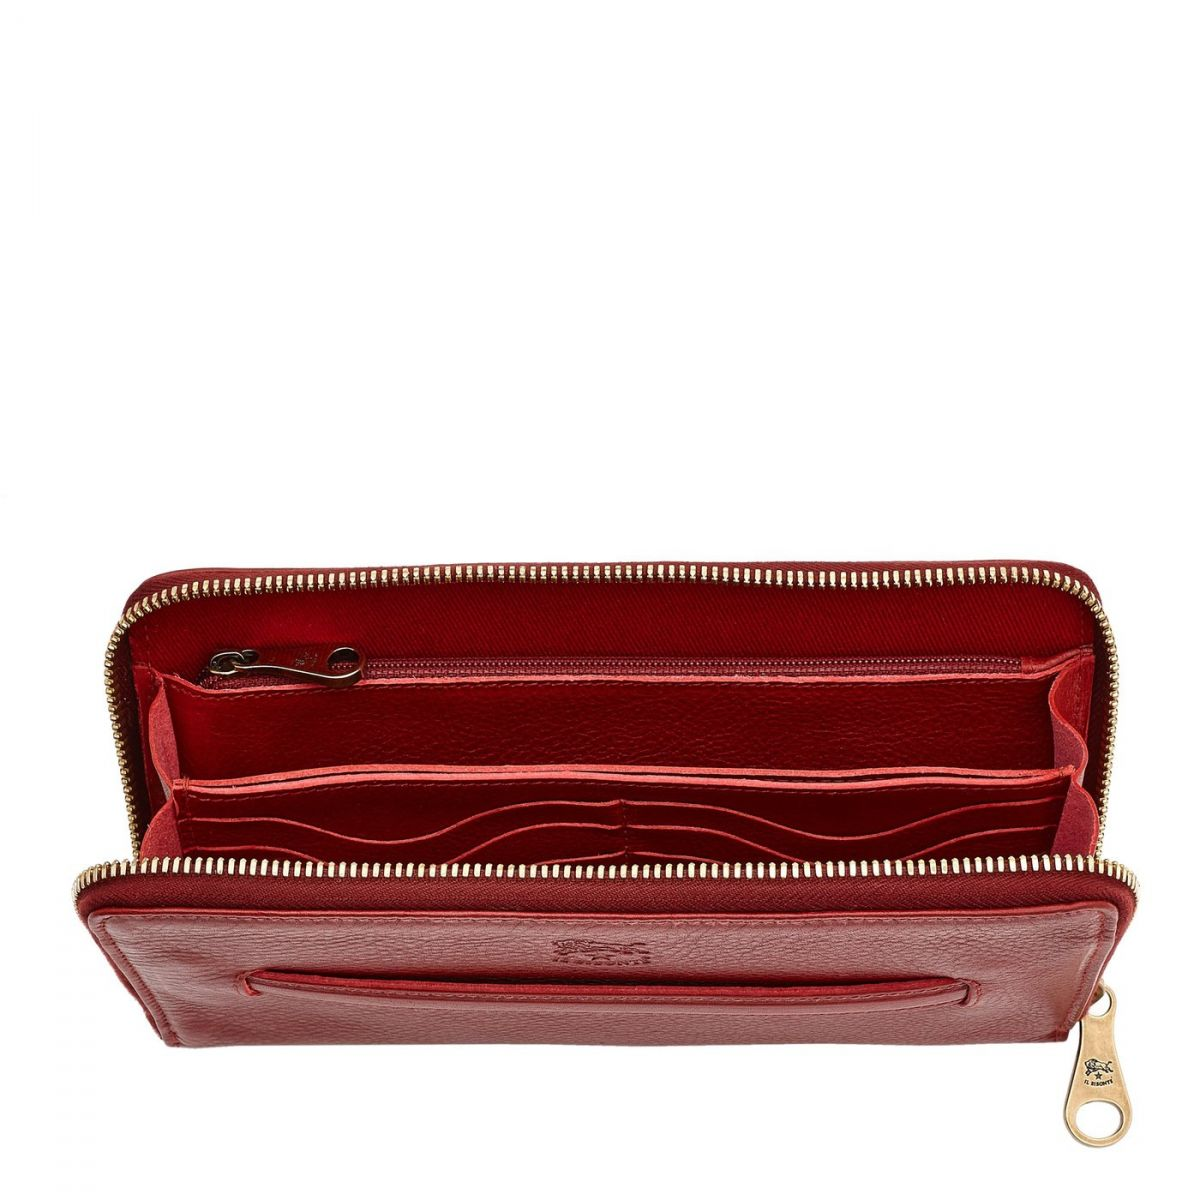 Women's Zip Around Wallet  in Cowhide Leather SZW028 color Red | Details